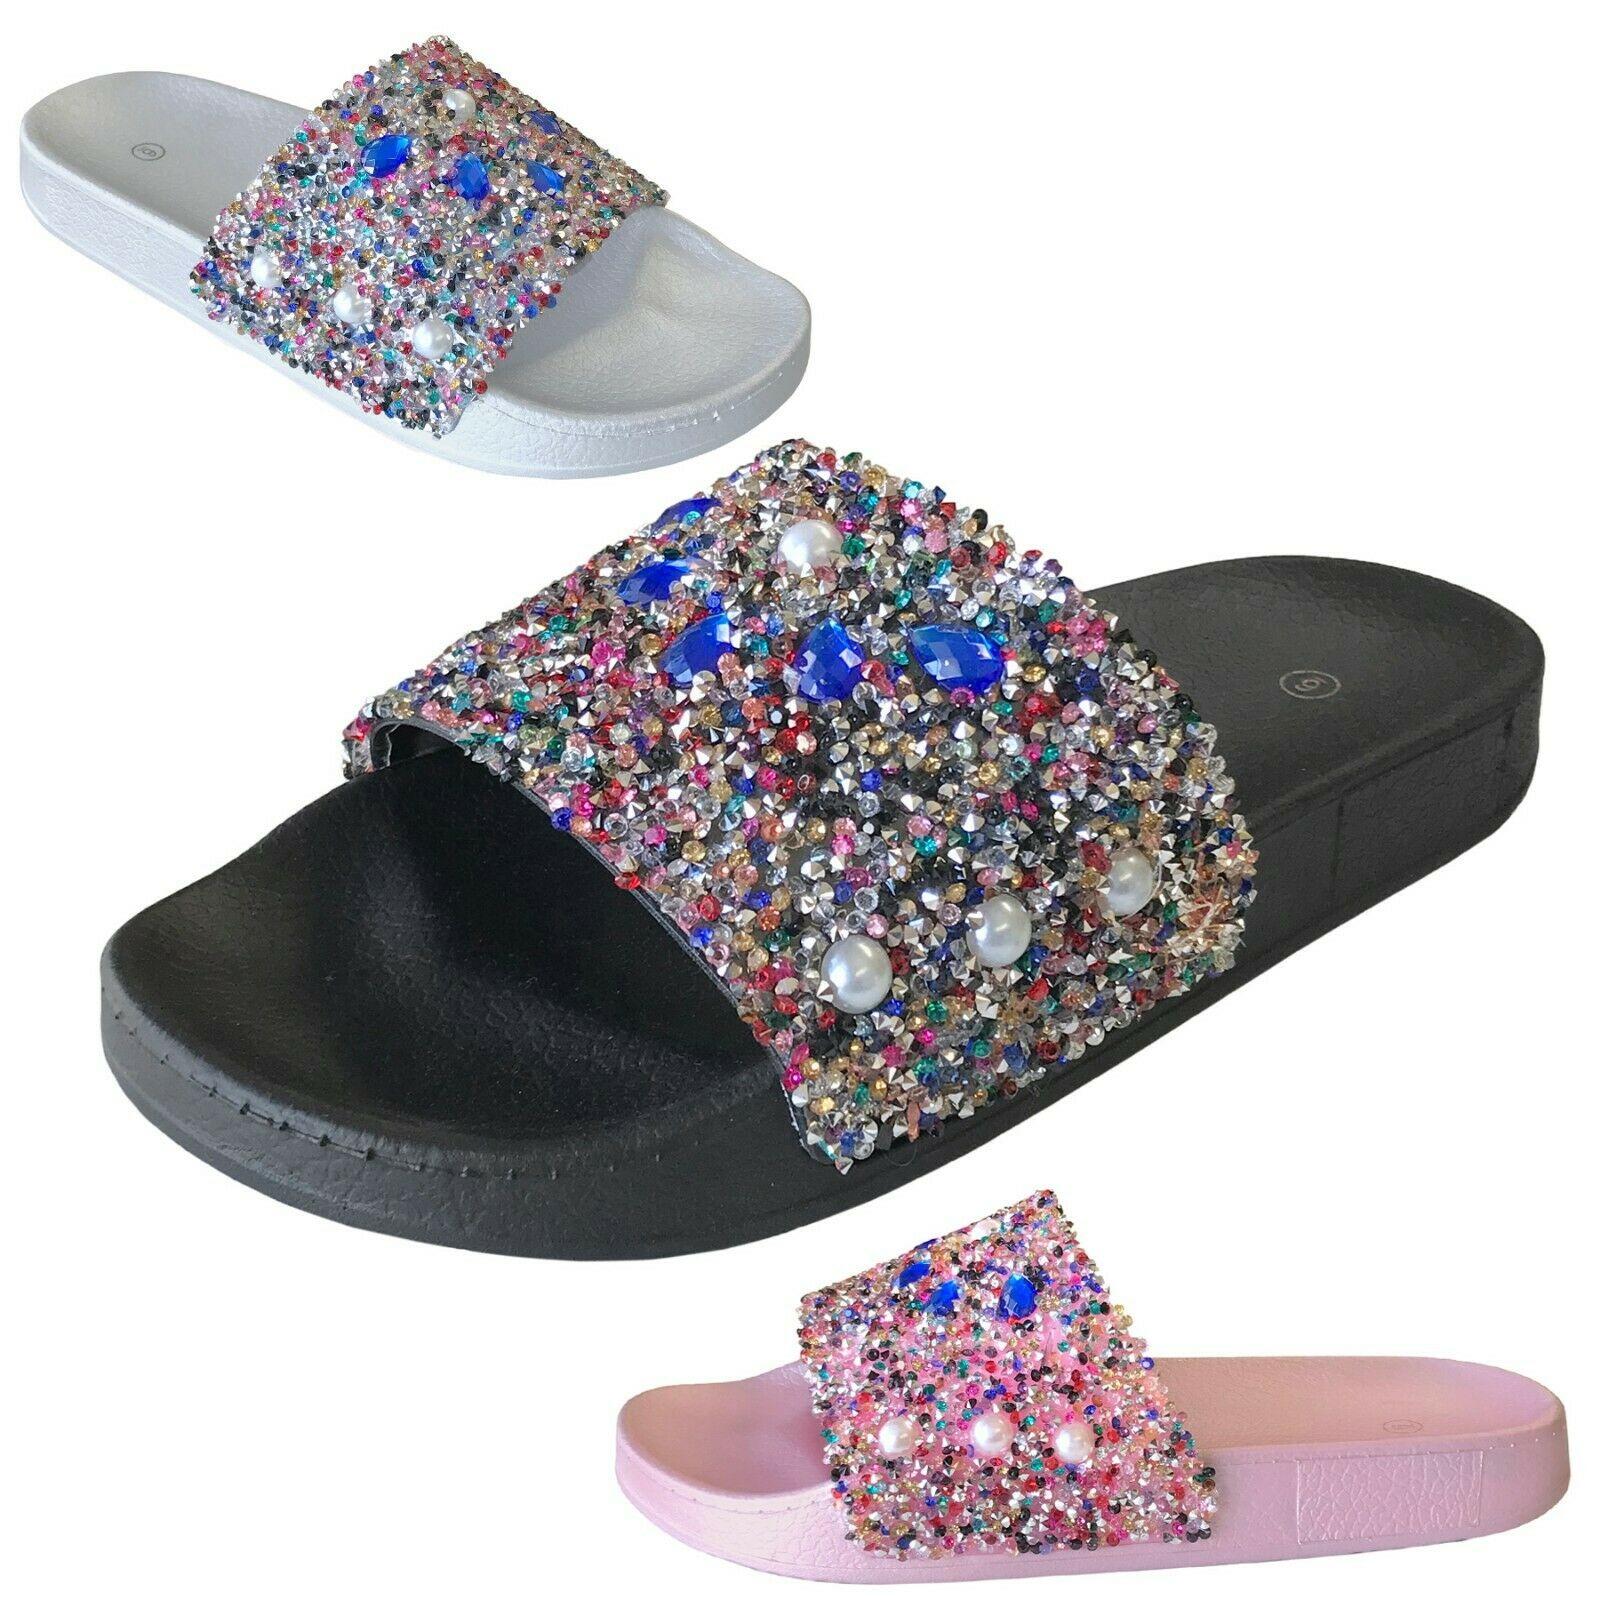 NEW Women's Colorful Rhinestone Slide Sandals Slip On Flops